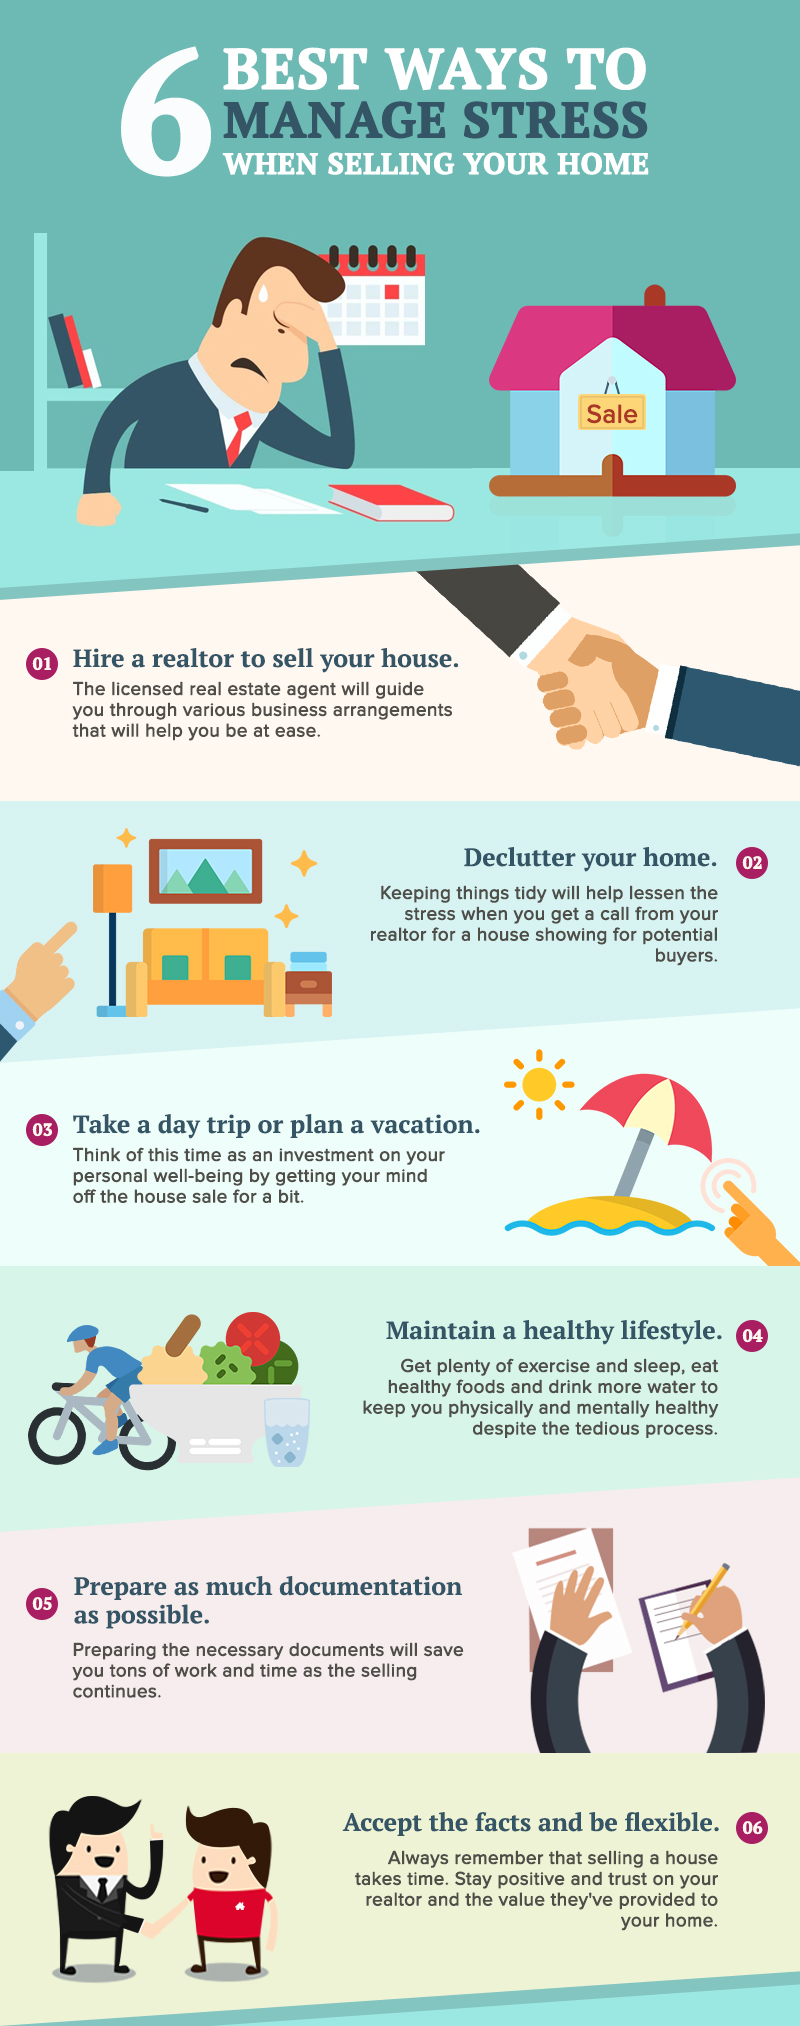 6 Best Ways to Manage Stress When Selling Your Home-main.jpg